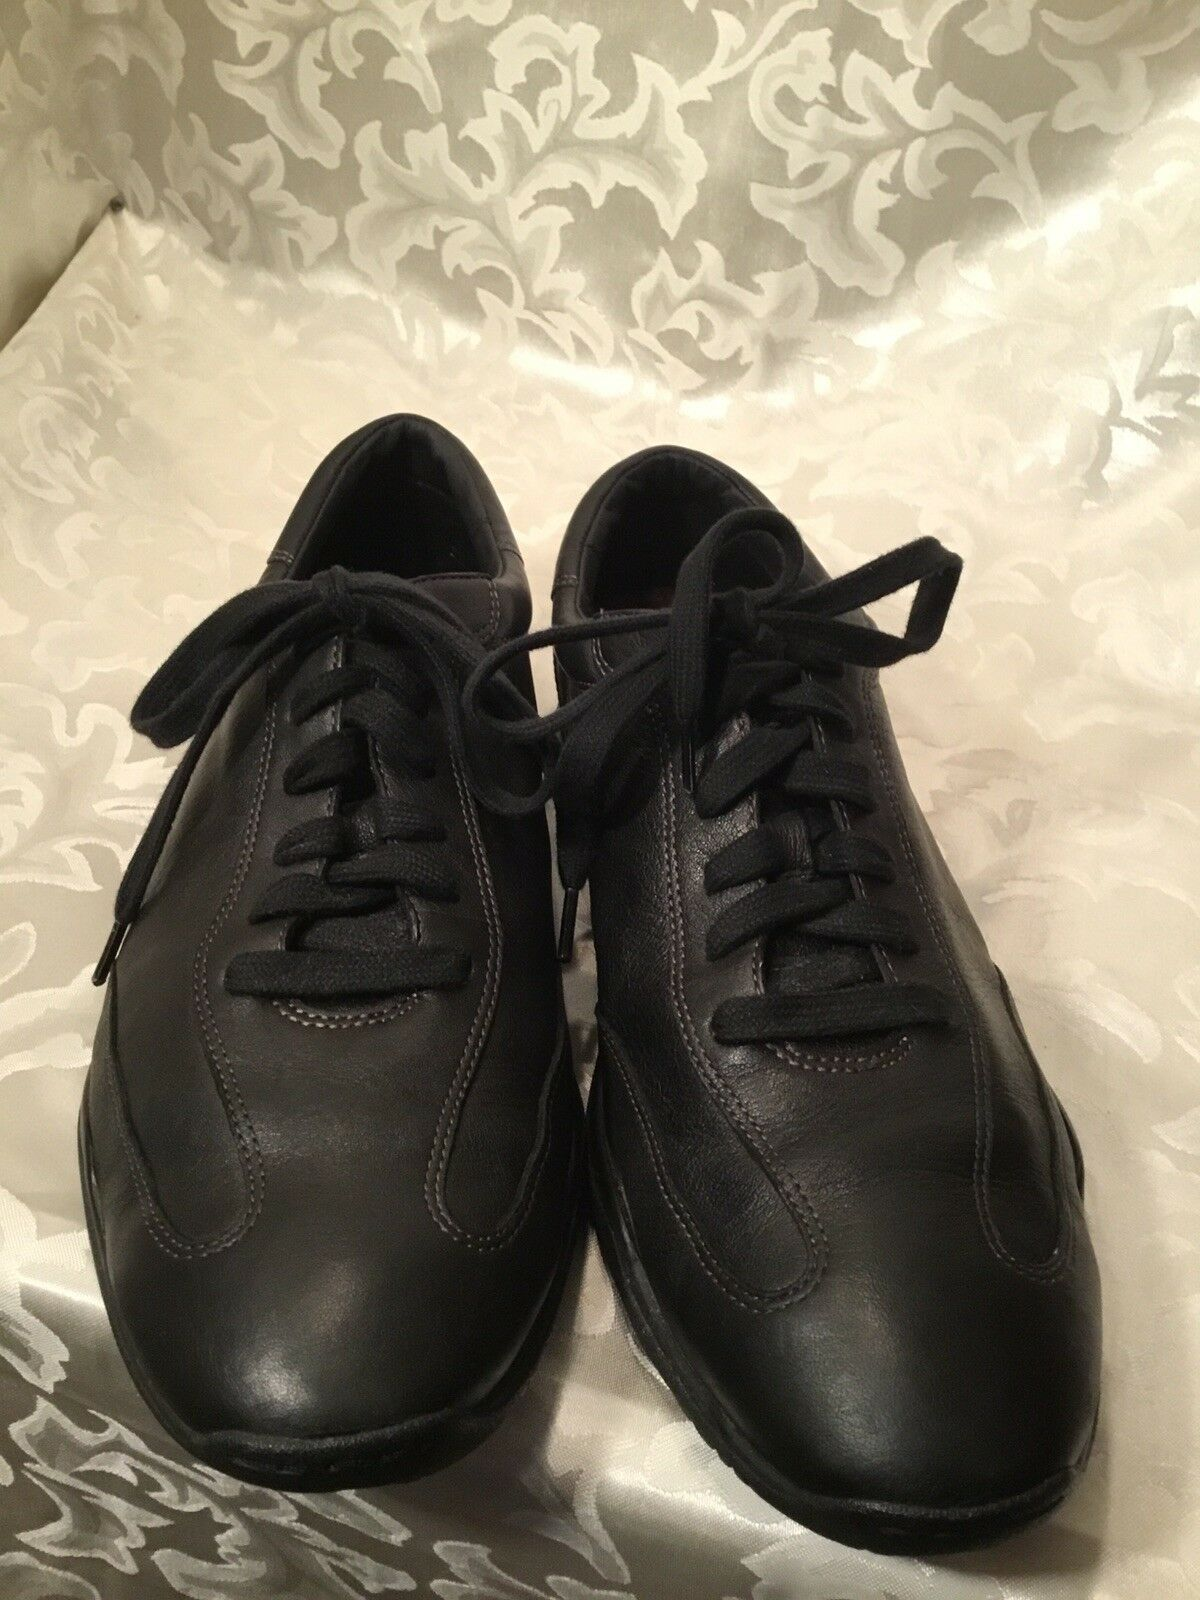 Cole Haan NikeAir Mens Black Leather Lace Up Casual Fashion Sneakers 10.5M NICE